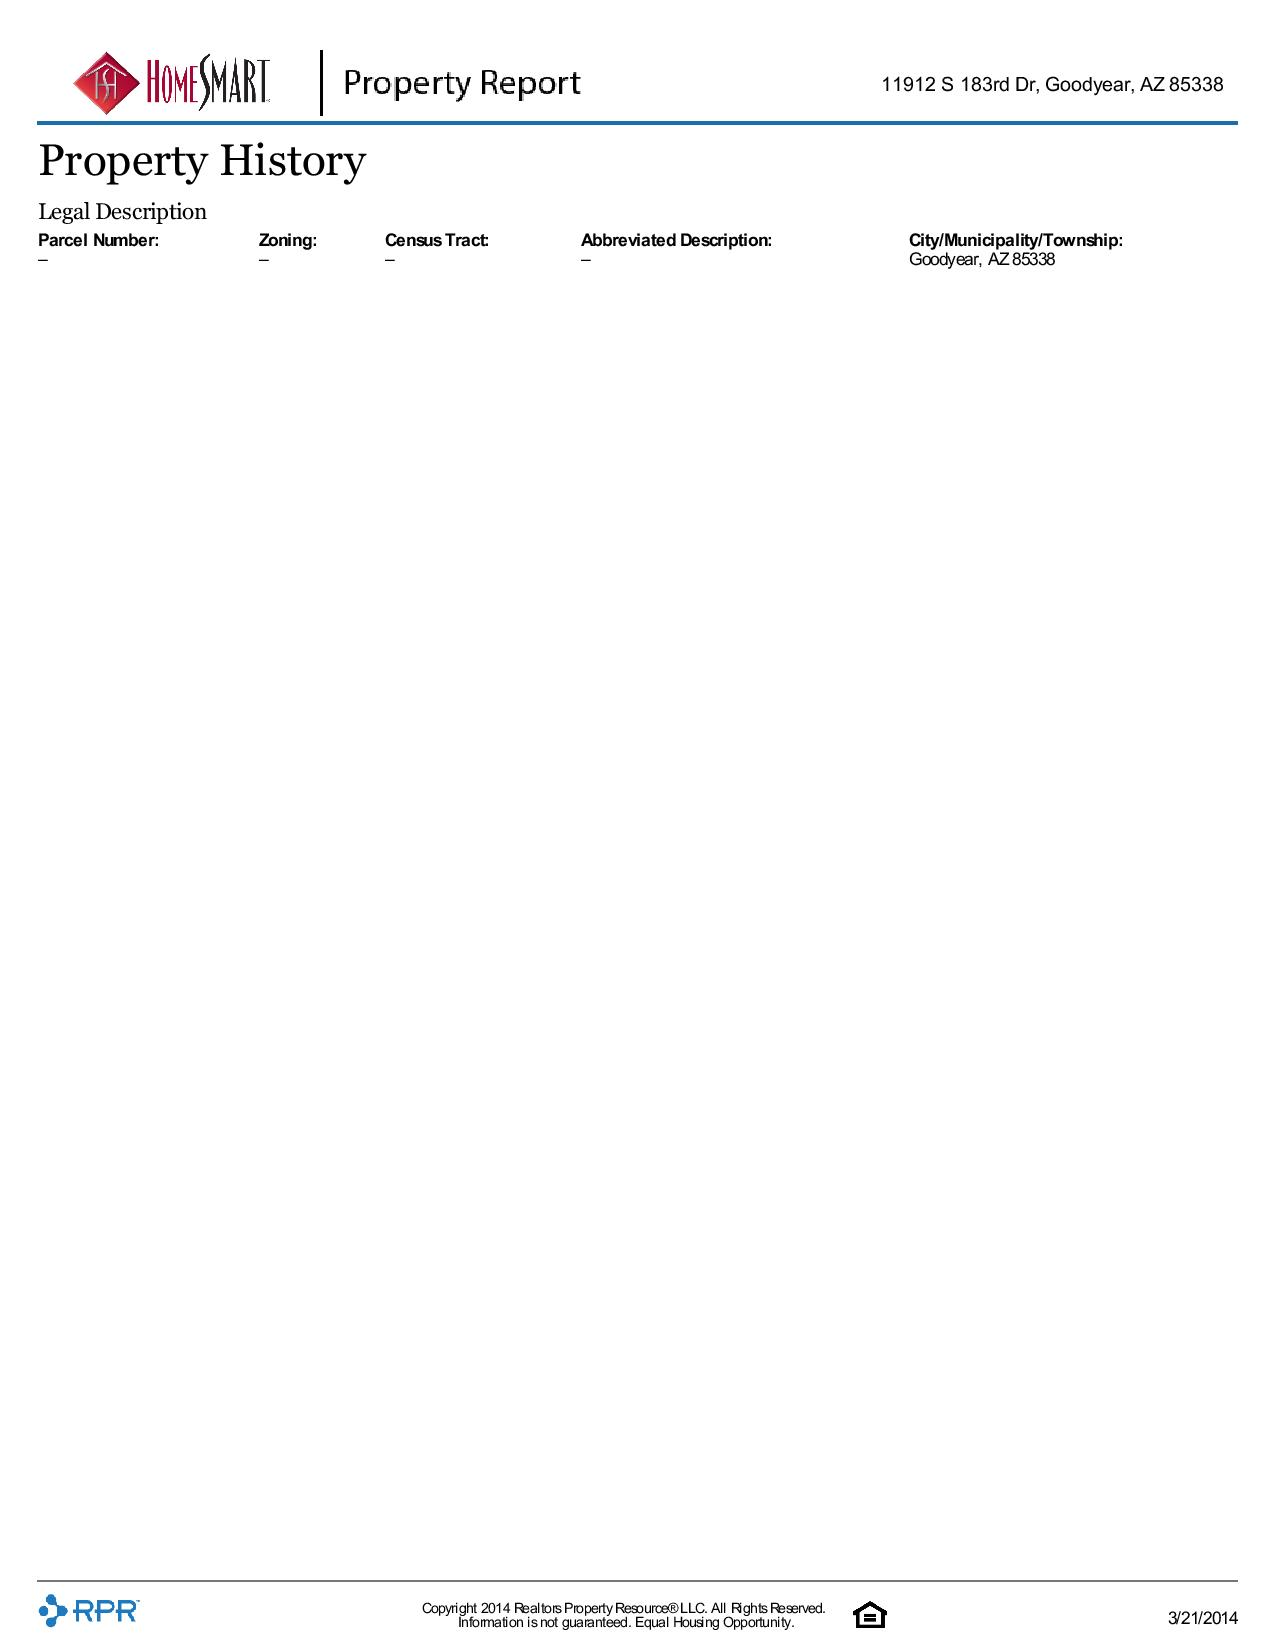 11912-S-183rd-Dr-Goodyear-AZ-85338-page-006